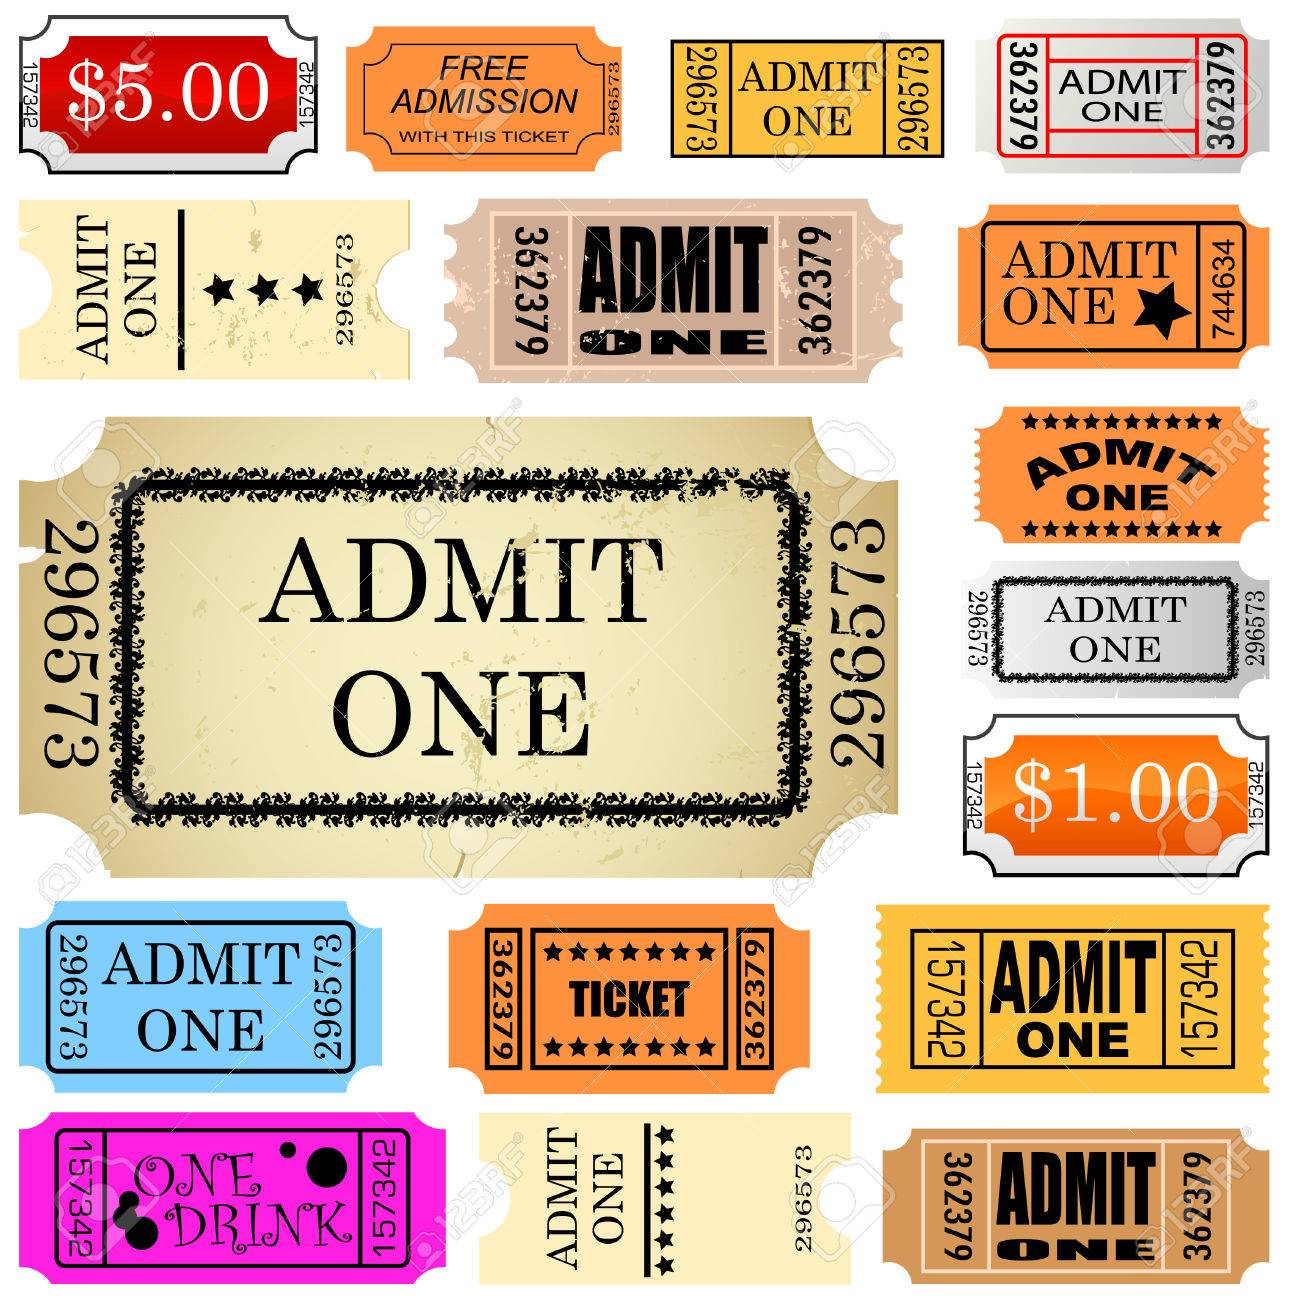 admit one ticket template free – Ticket Admit One Template